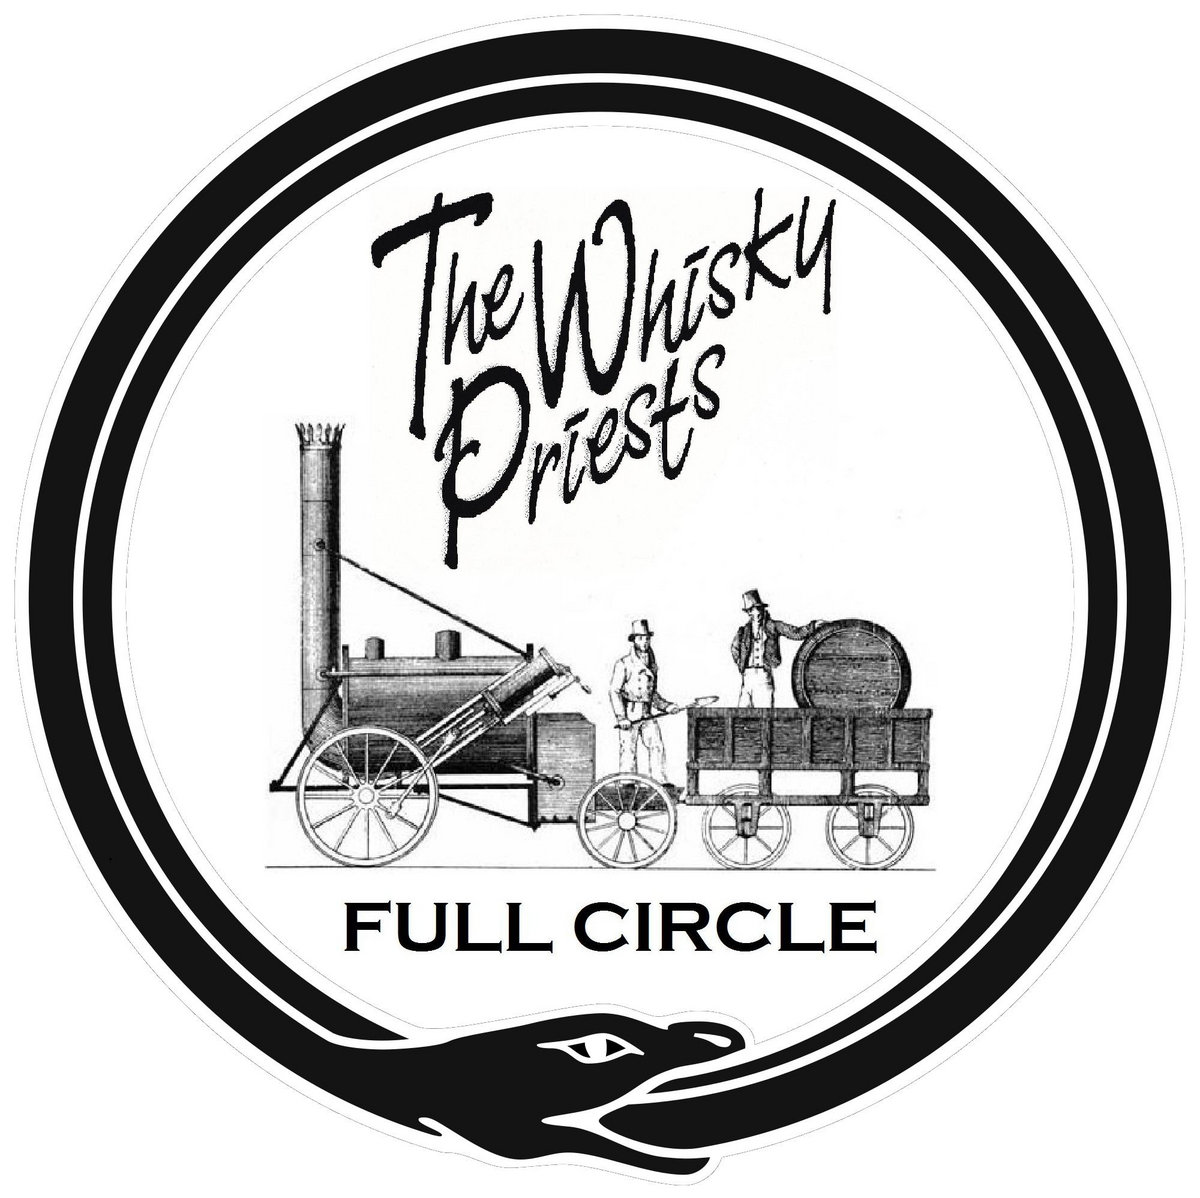 Full Circle [EP] | The Whisky Priests